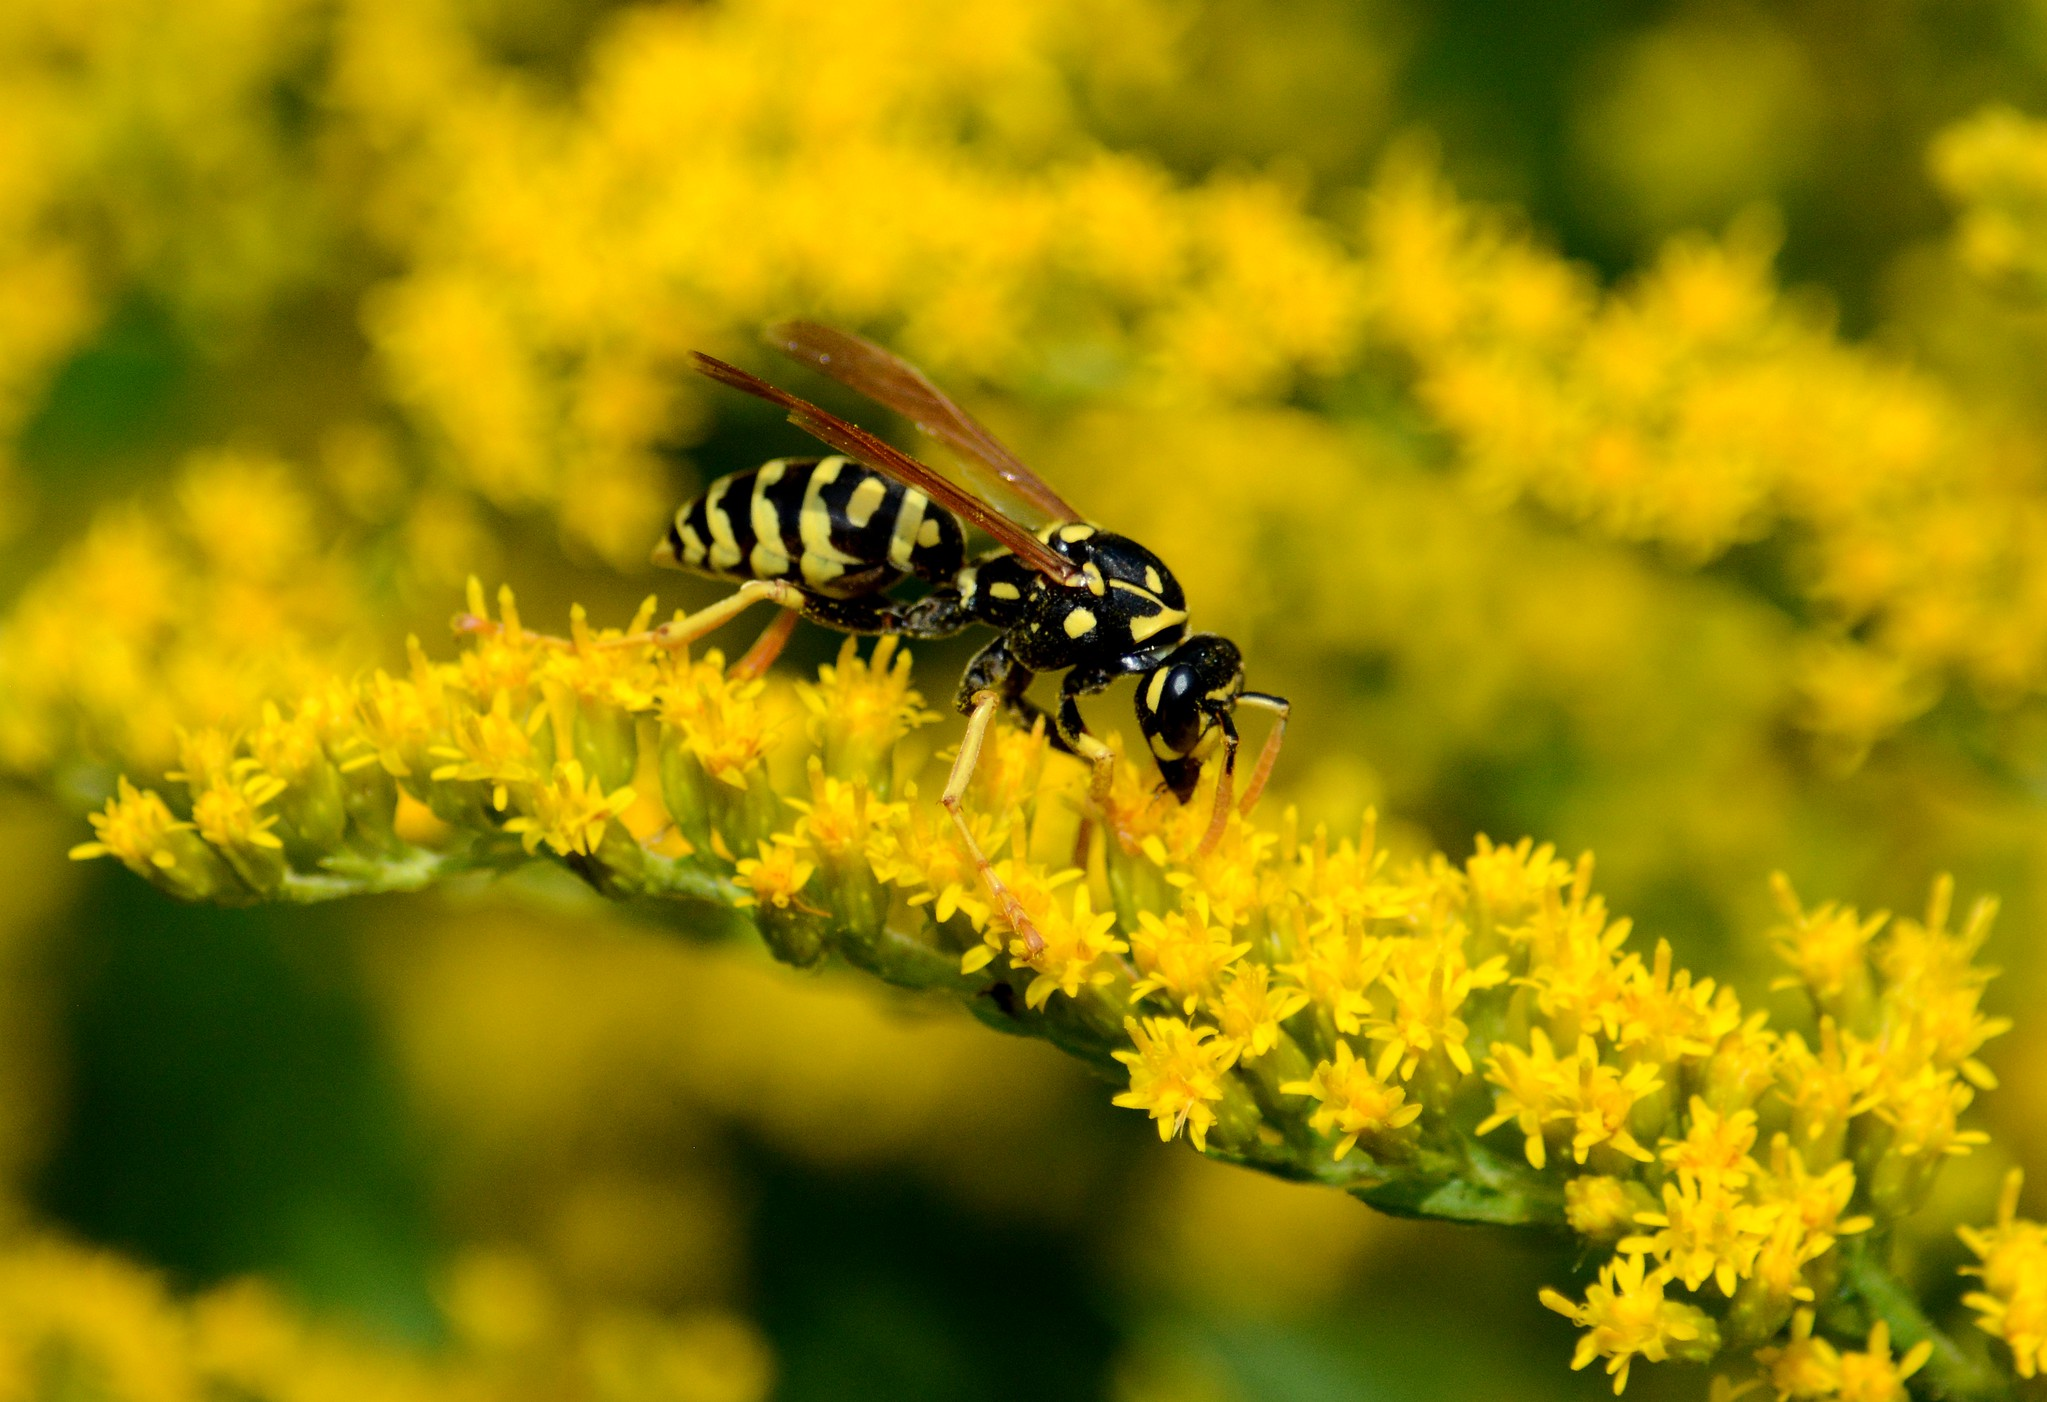 European paper wasp on goldenrod plant.